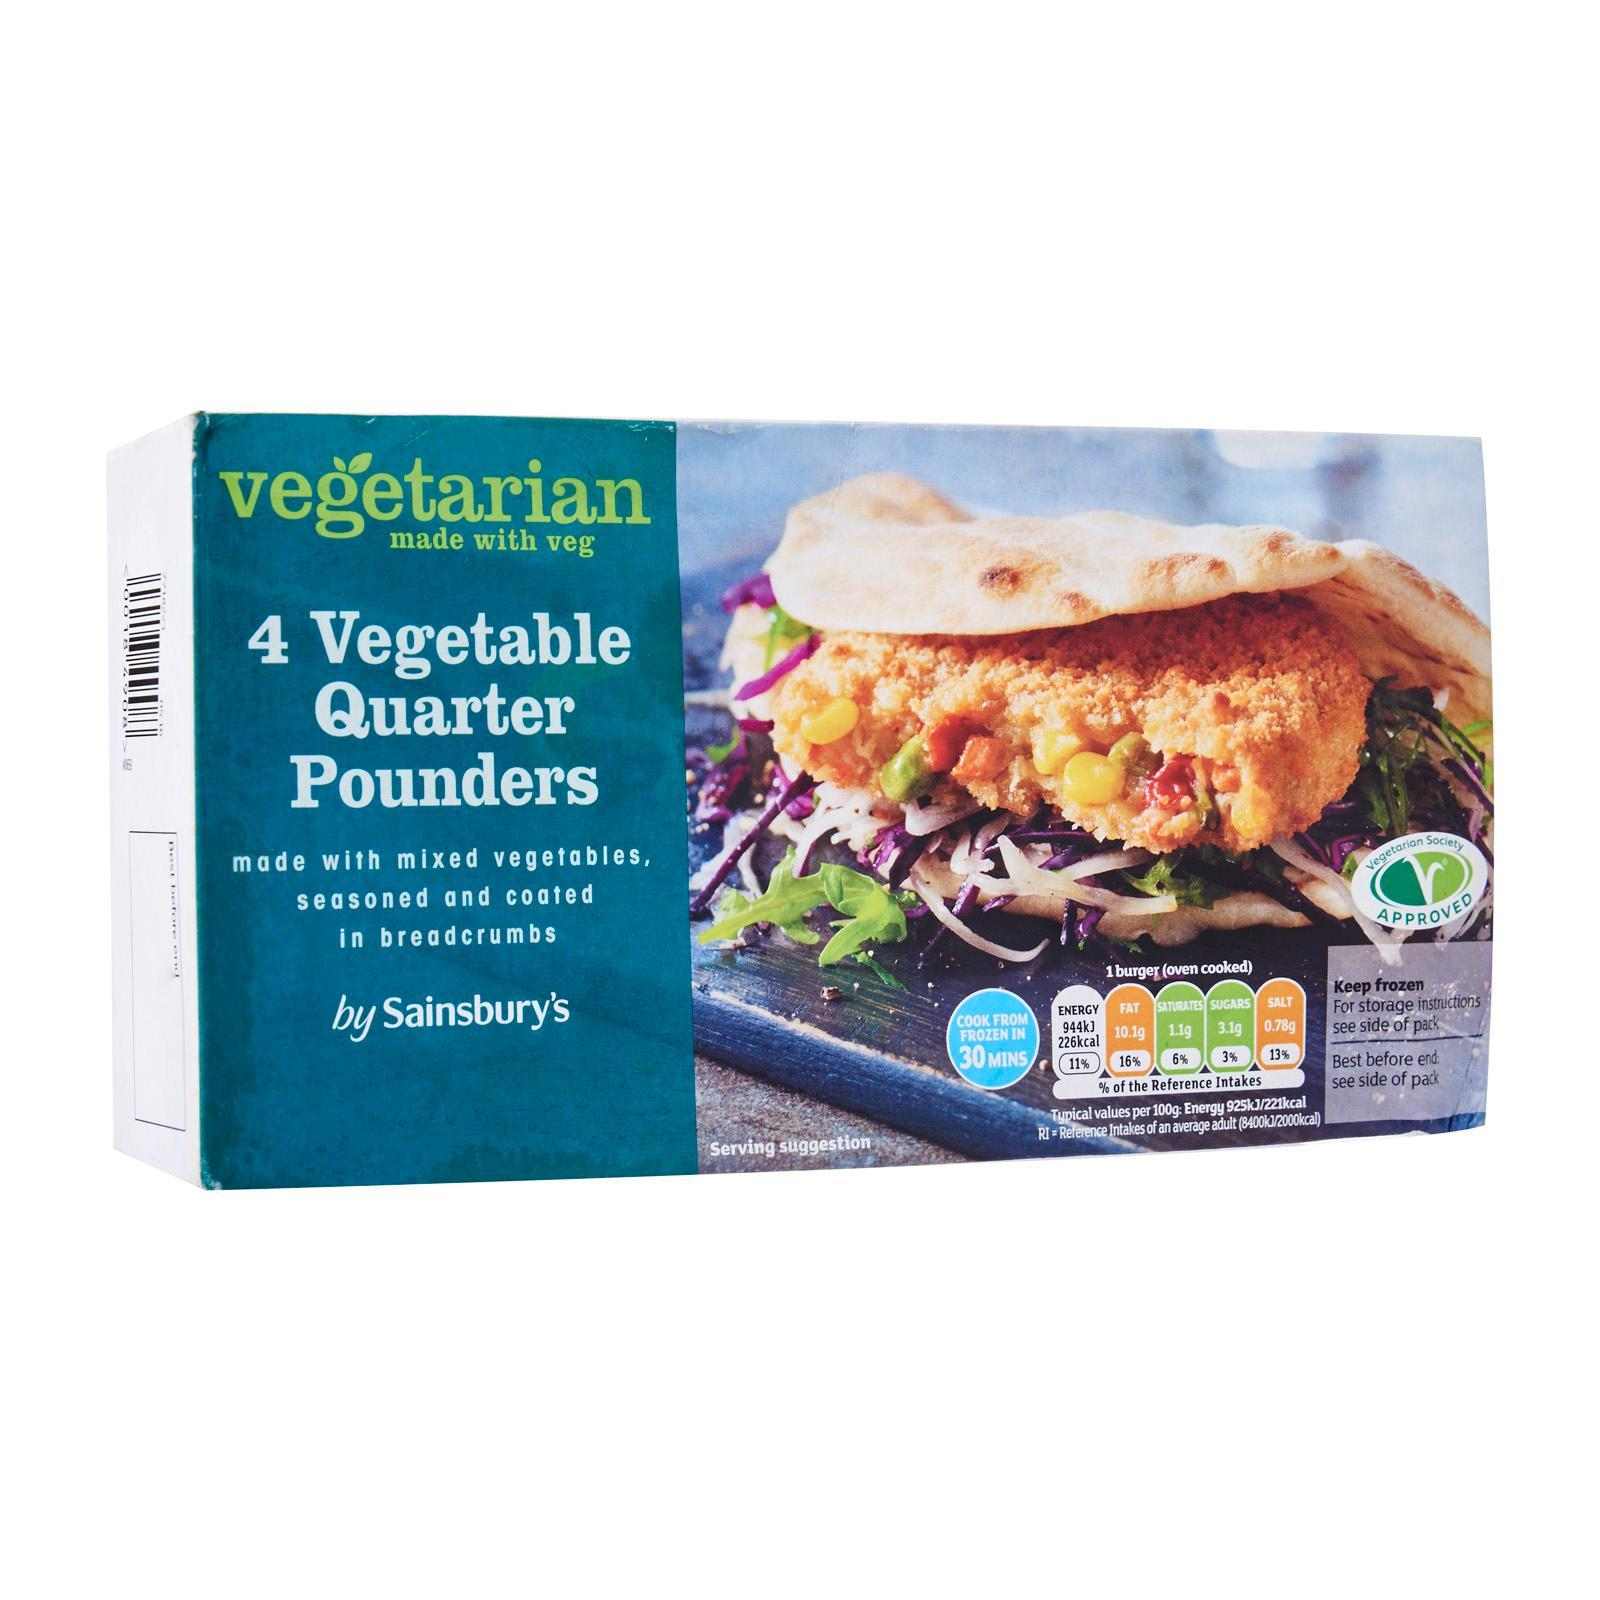 Sainsbury's Vegetarian Meat Free Quarter Pounders - Frozen